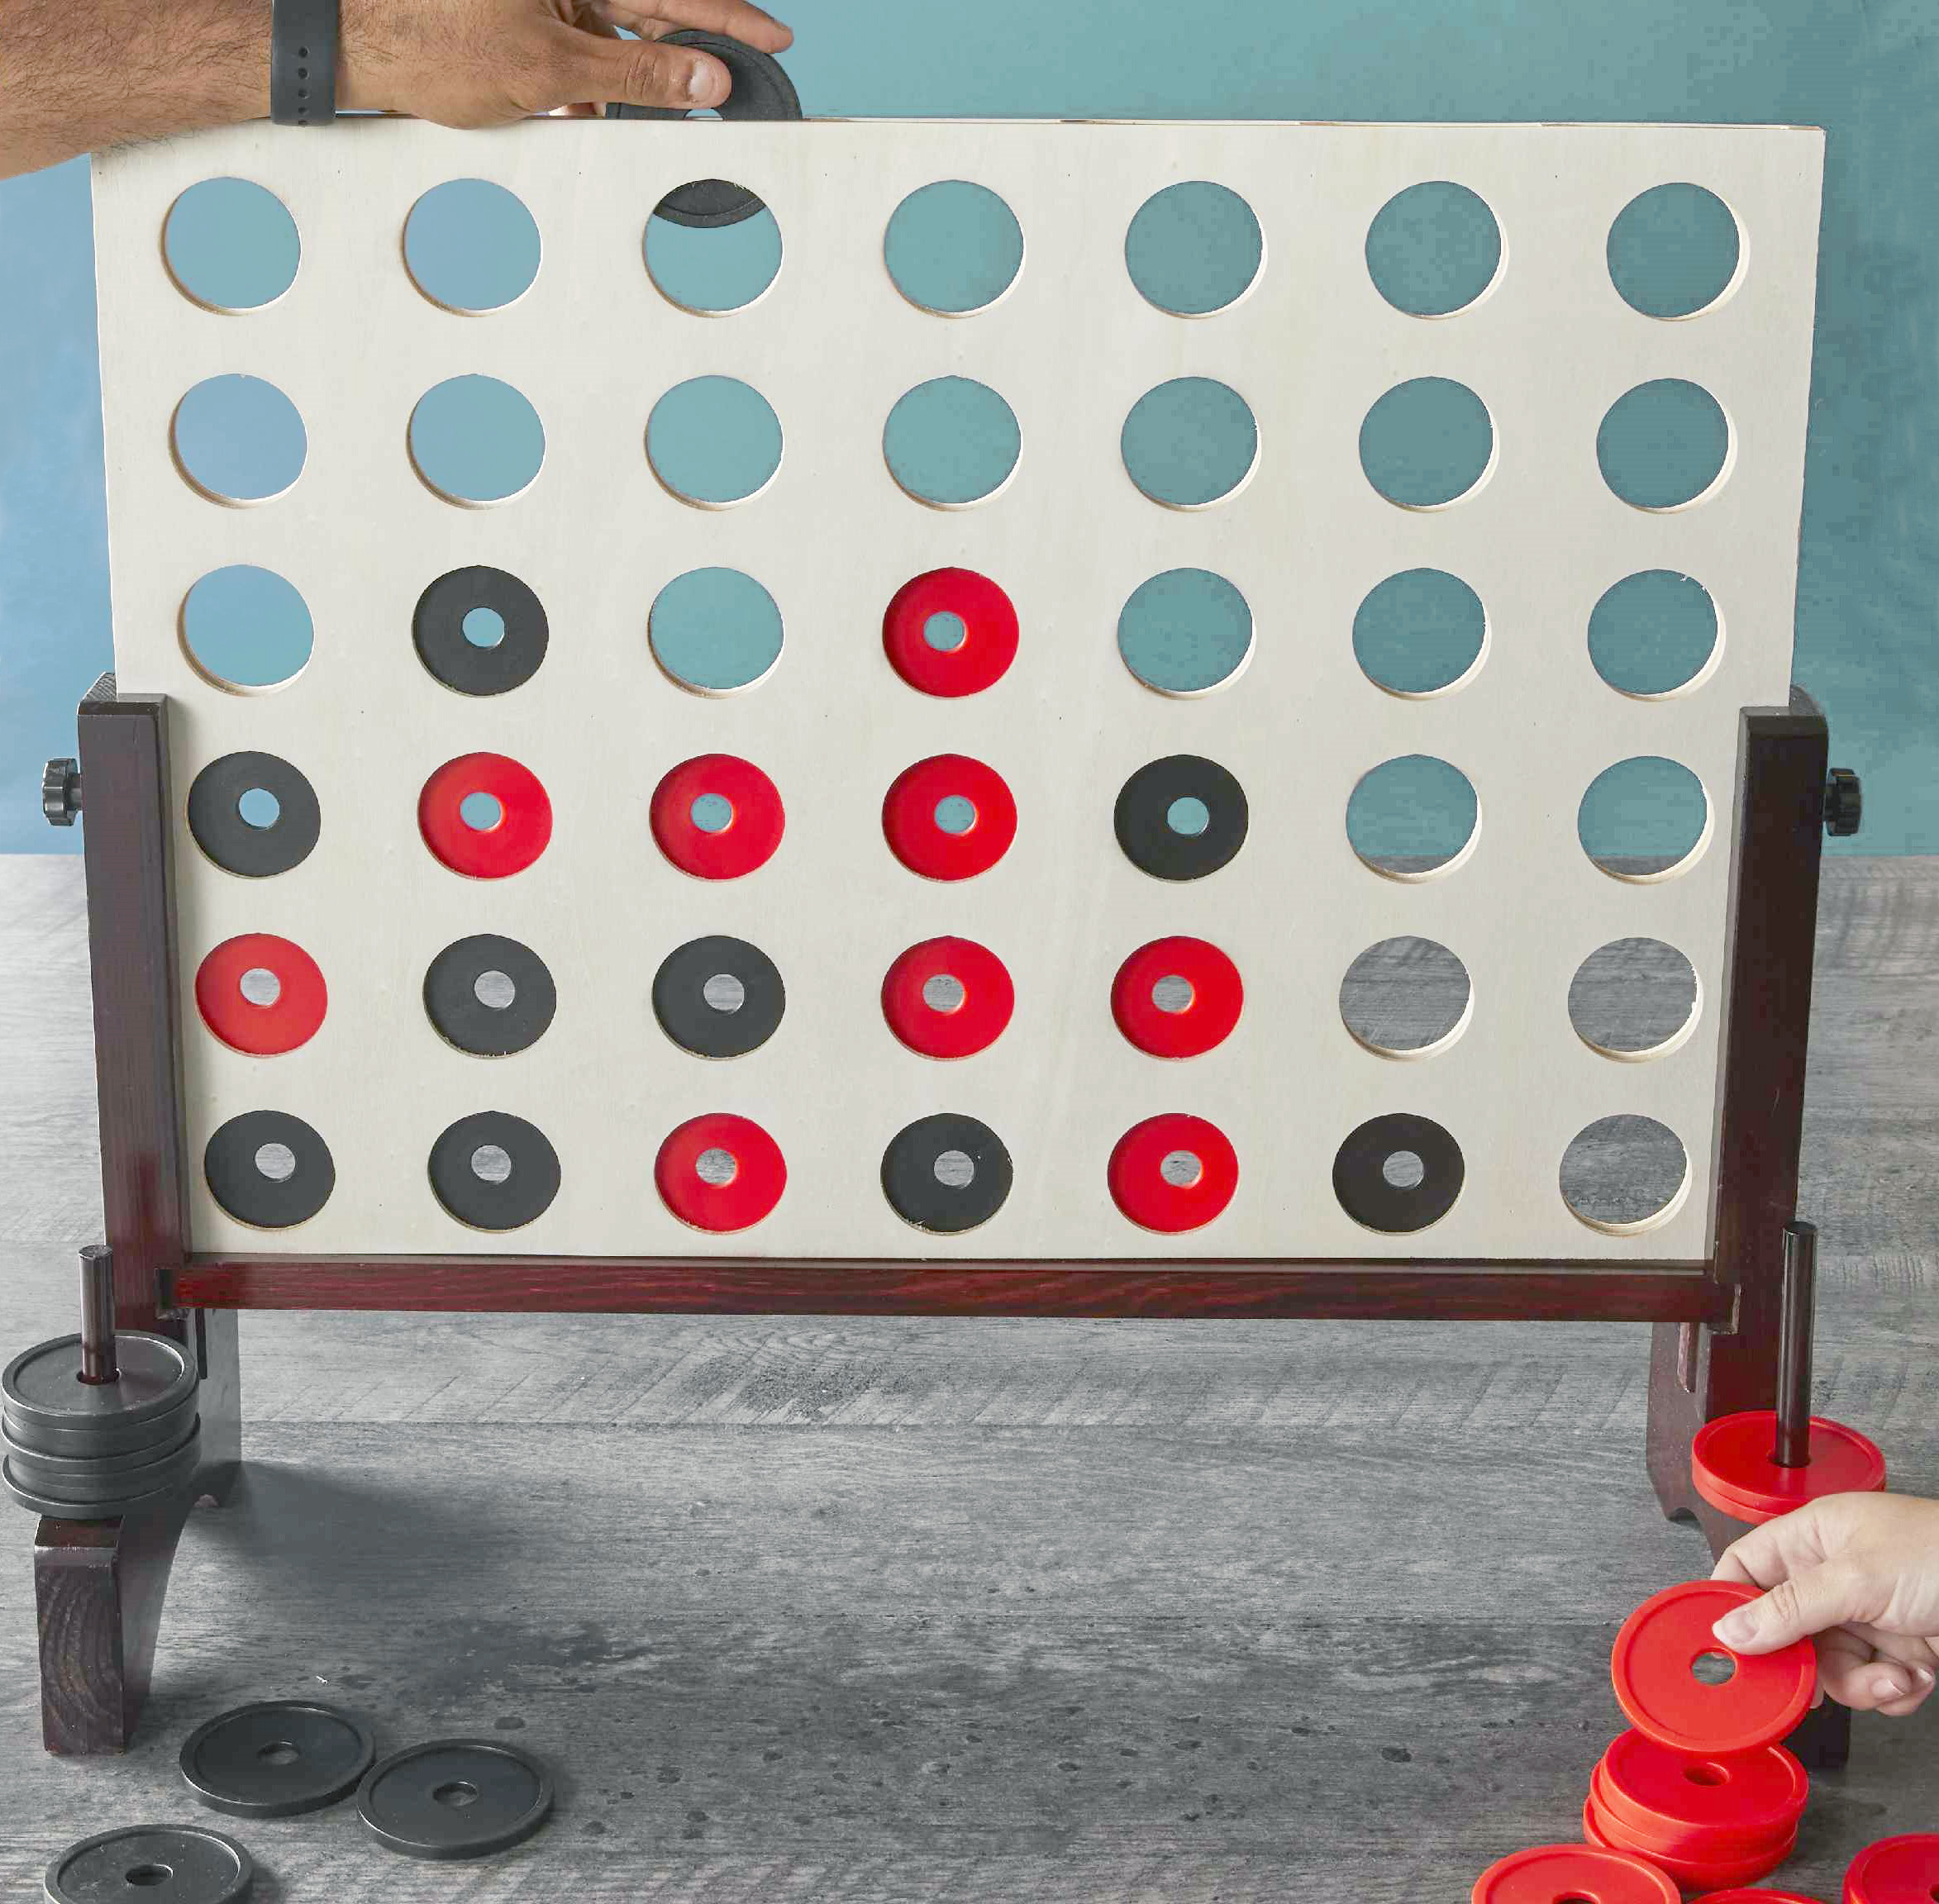 Giant game of connect 4 with two hands adding red and black discs